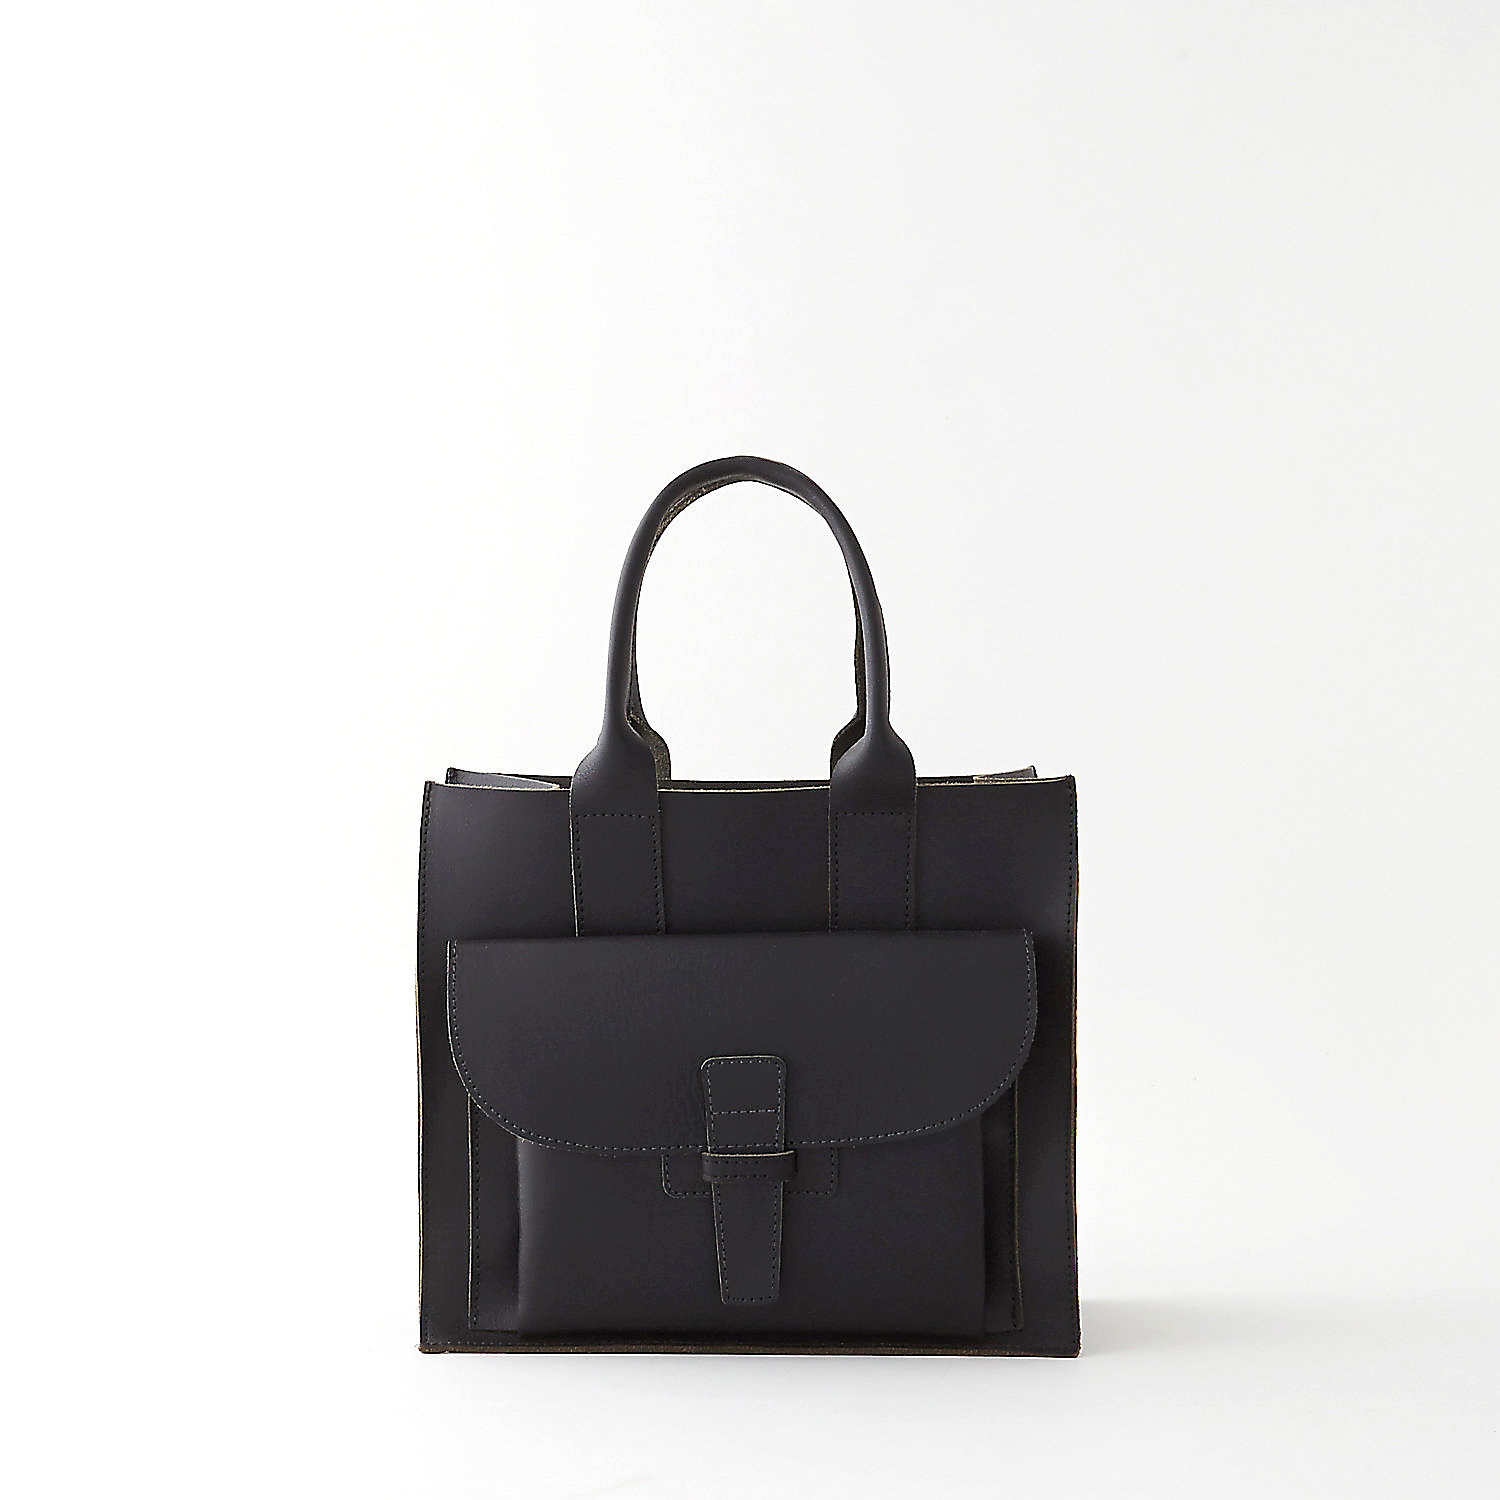 SAC 1 LEATHER BAG